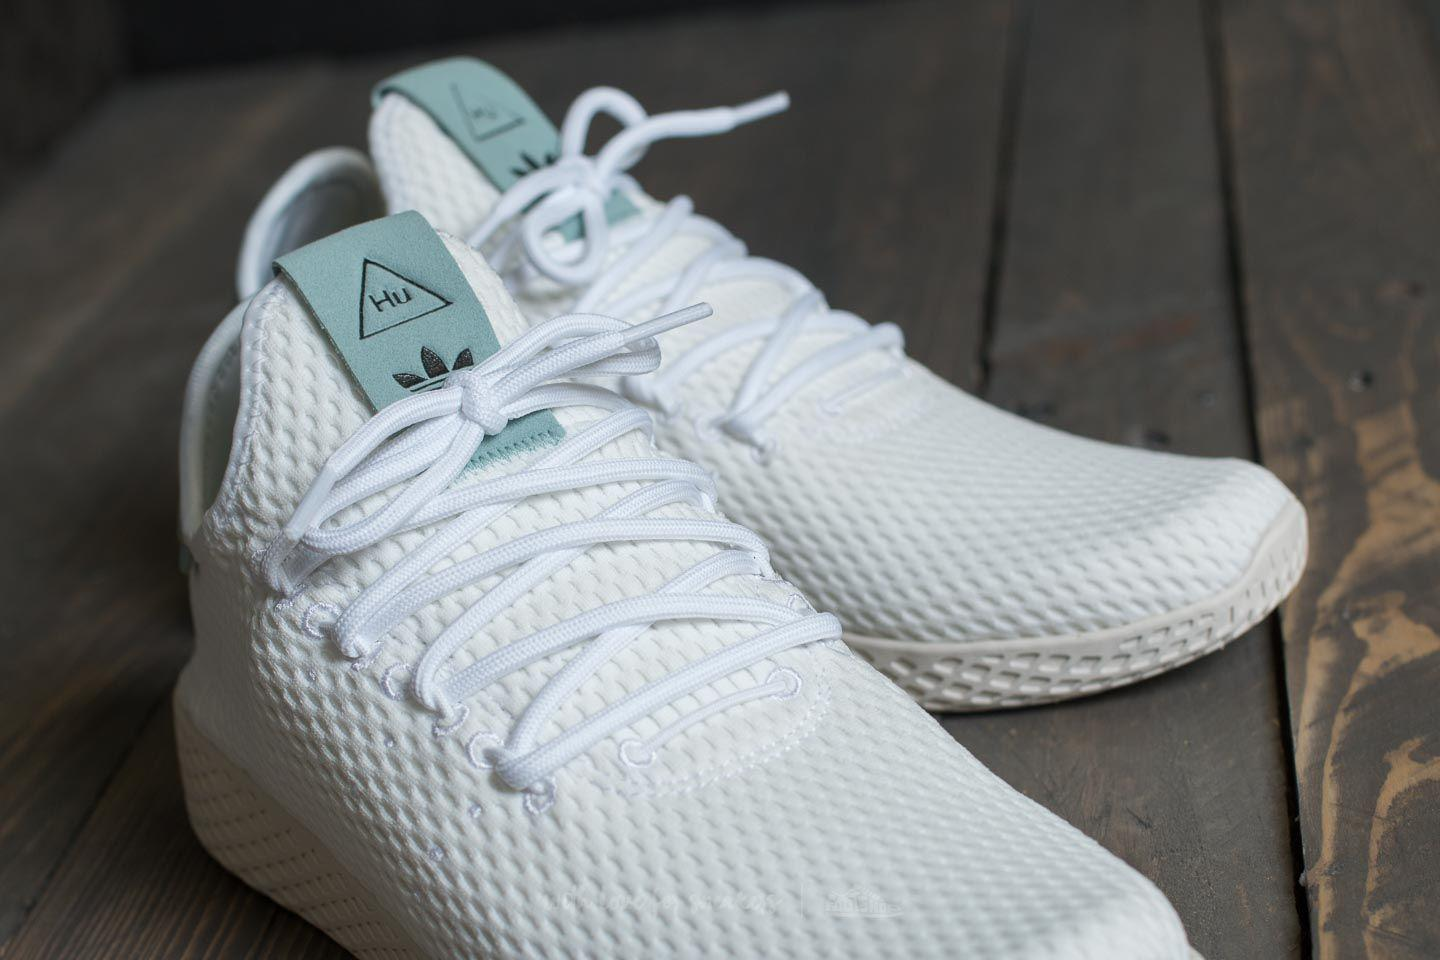 Lyst - adidas Originals Adidas Pharrell Williams Pw Tennis Hu Ftw ... 350064190